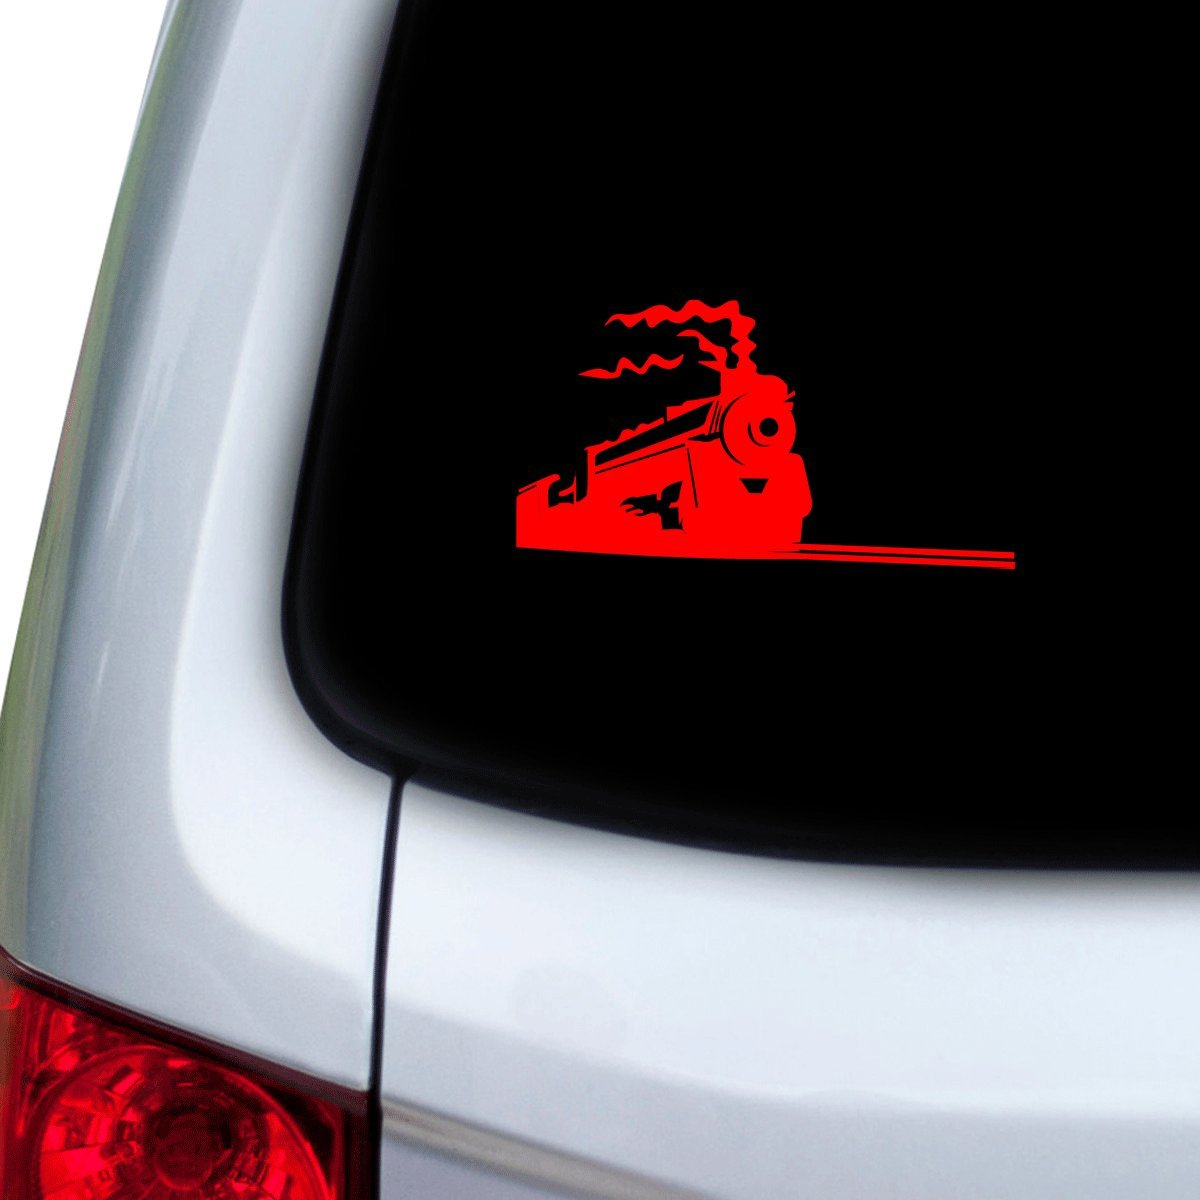 StickAny Car and Auto Decal Series Running Train Sticker for Windows Hoods Doors Red